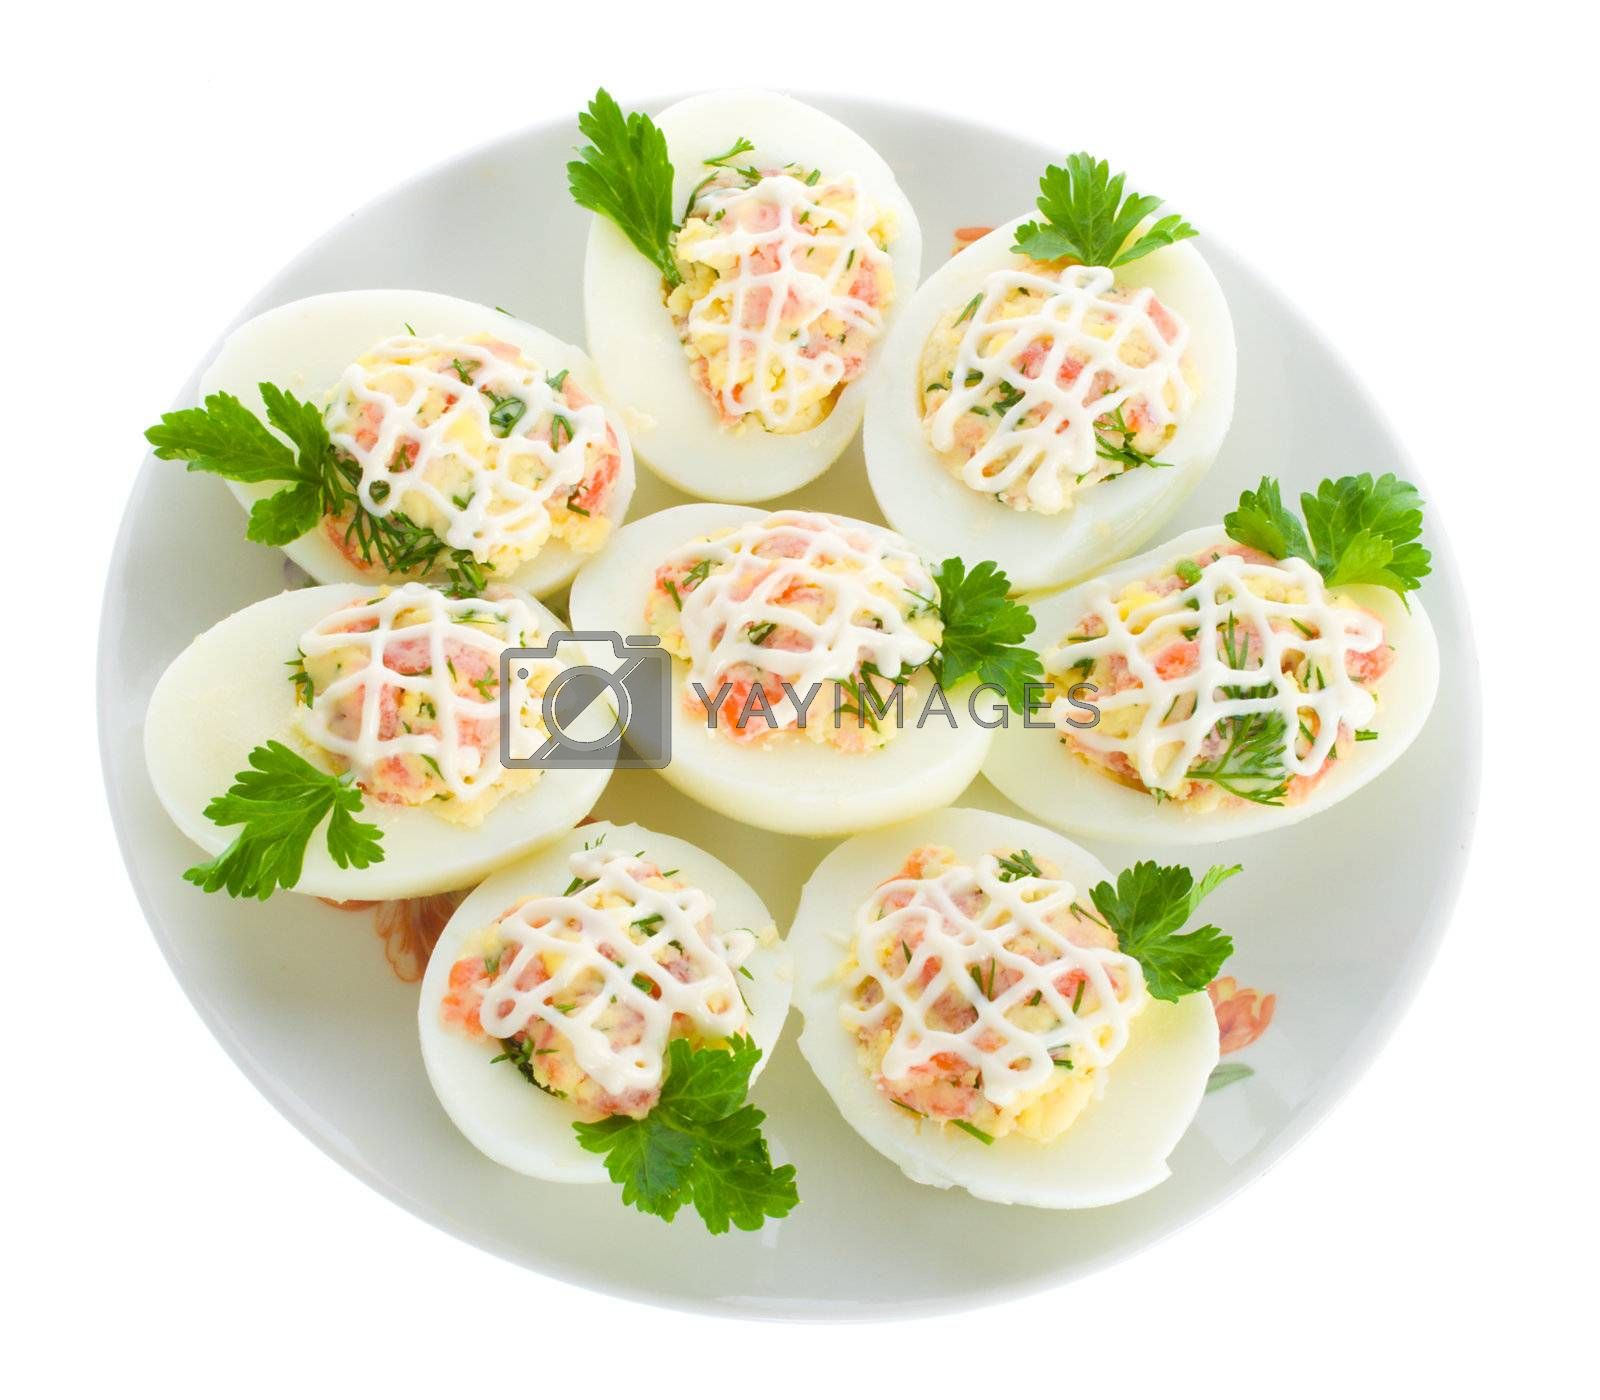 stuffed eggs with red fish, view from above, isolated on white